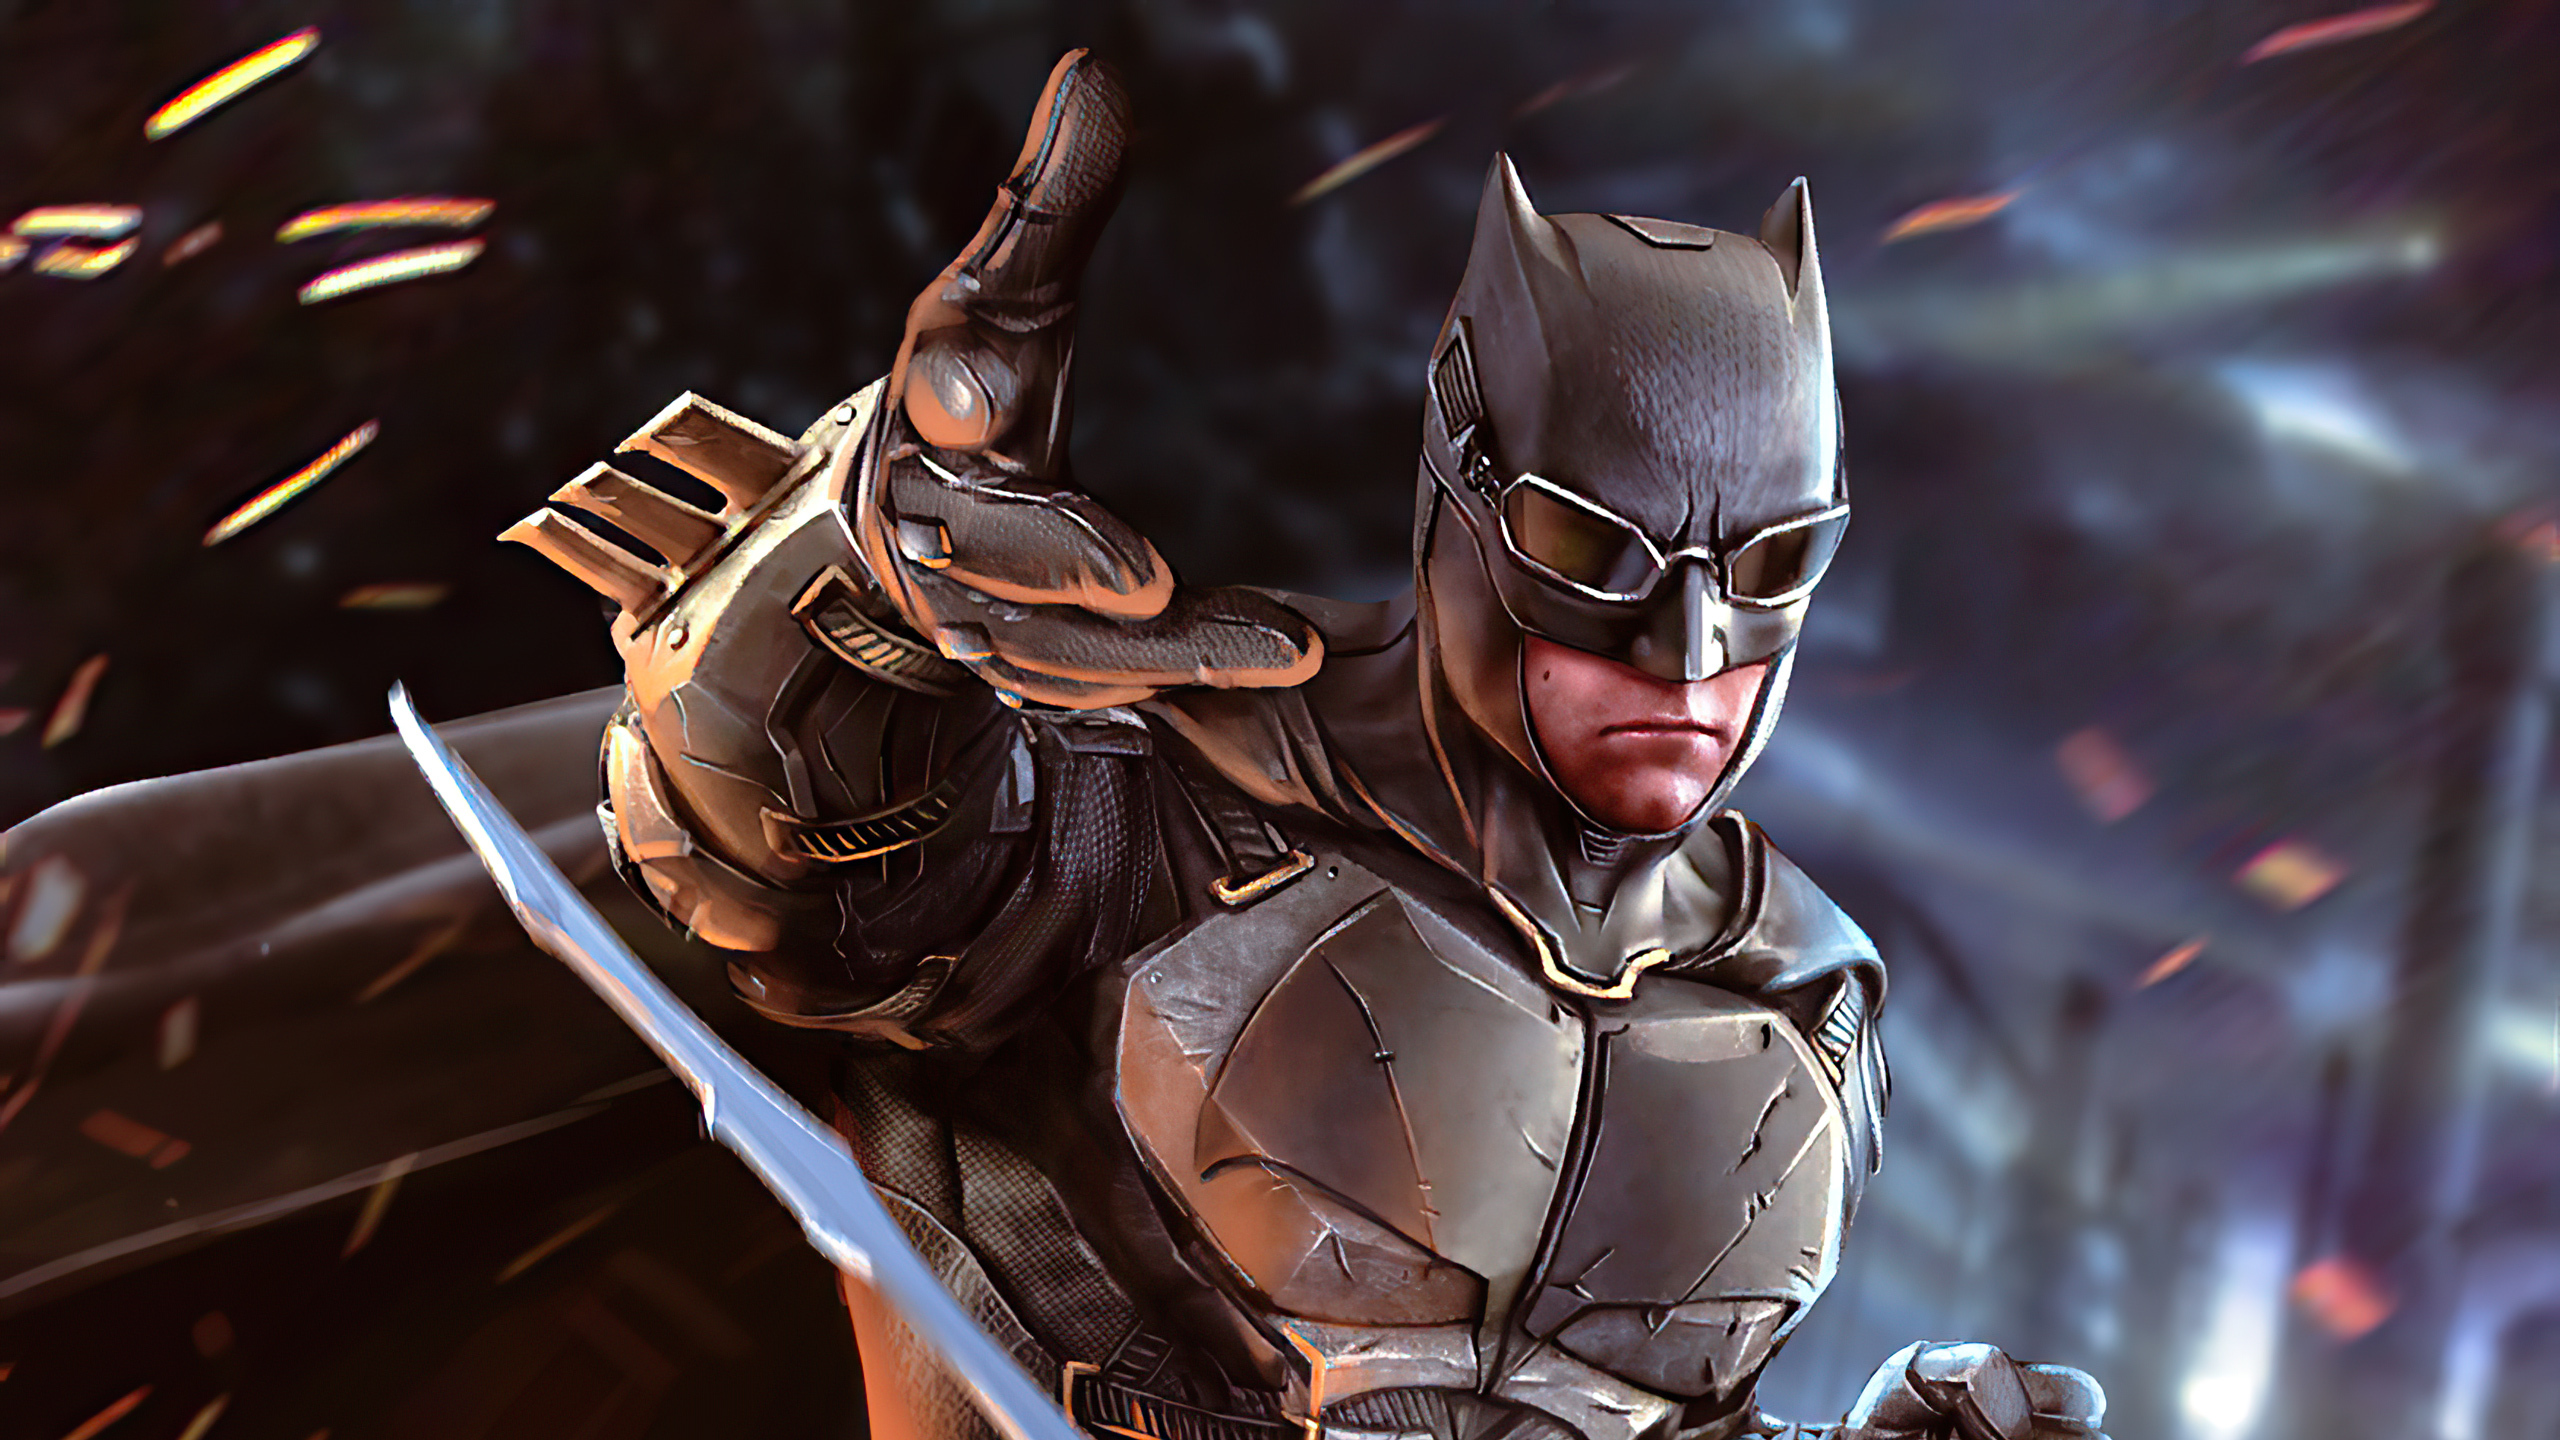 2560x1440 Batman Injustice Mobile Game 1440P Resolution HD ...